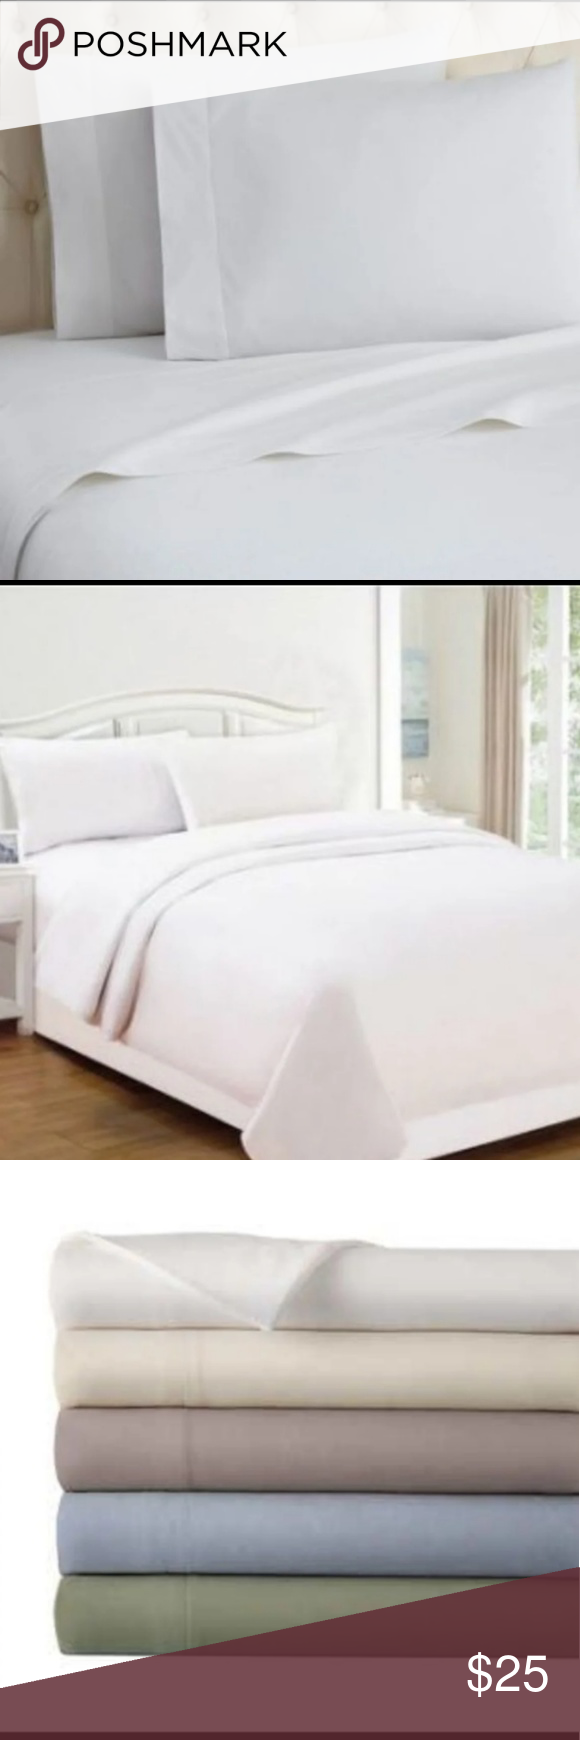 Sold Shavelflannel Solid Twin Xl Sheet Set Sheet Sets Twin Xl Solid Sheet Sets